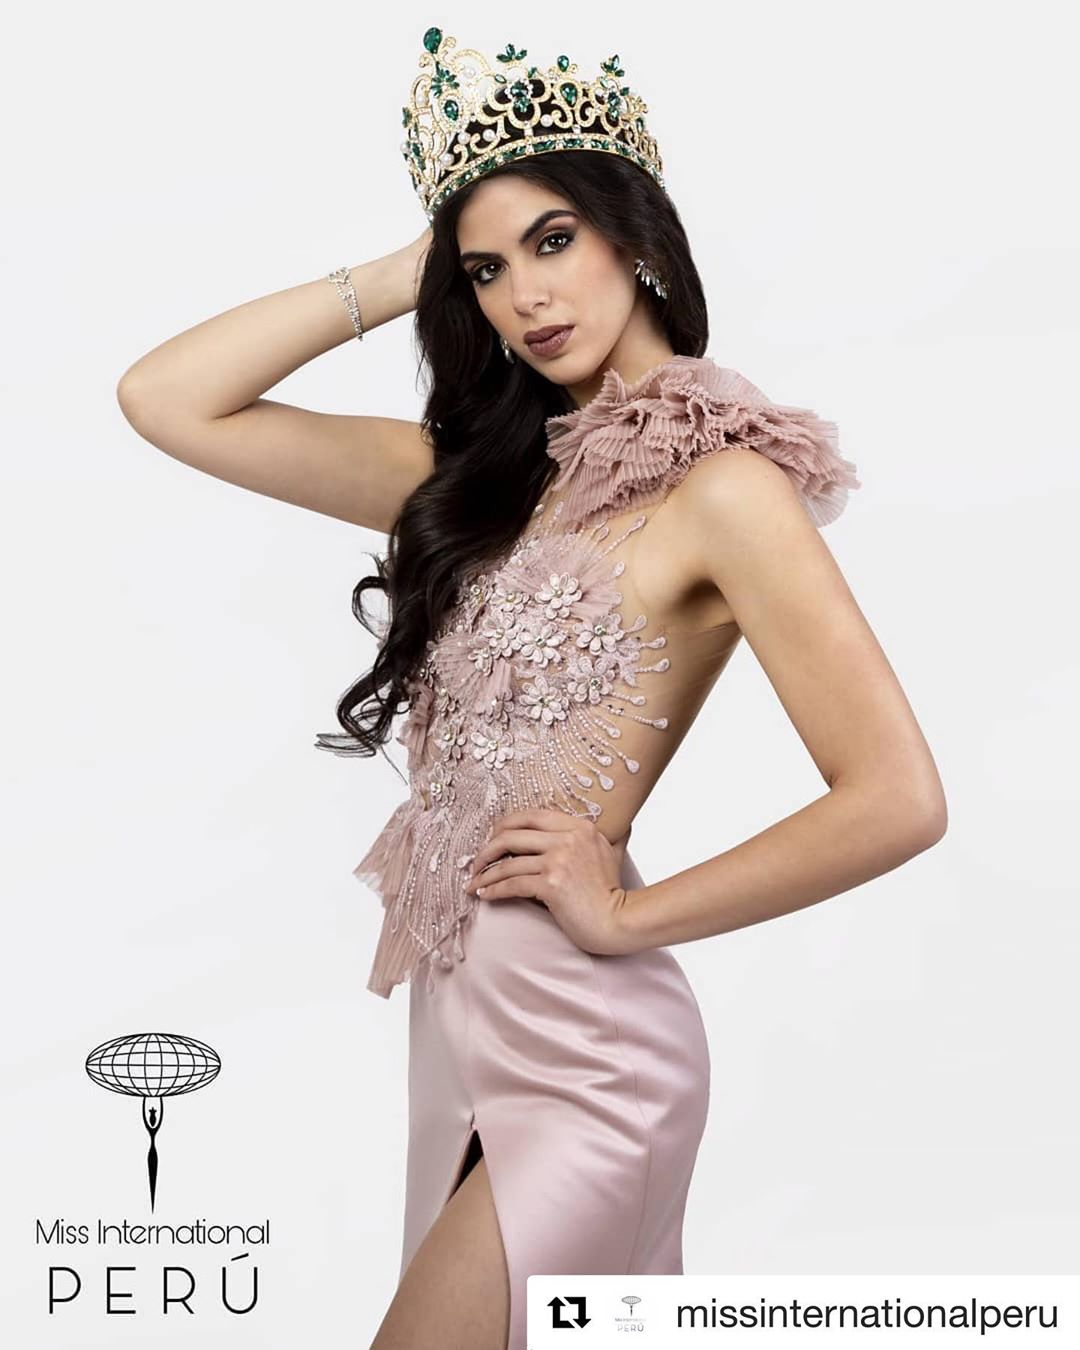 majo barbis, miss international peru 2019. 69621910